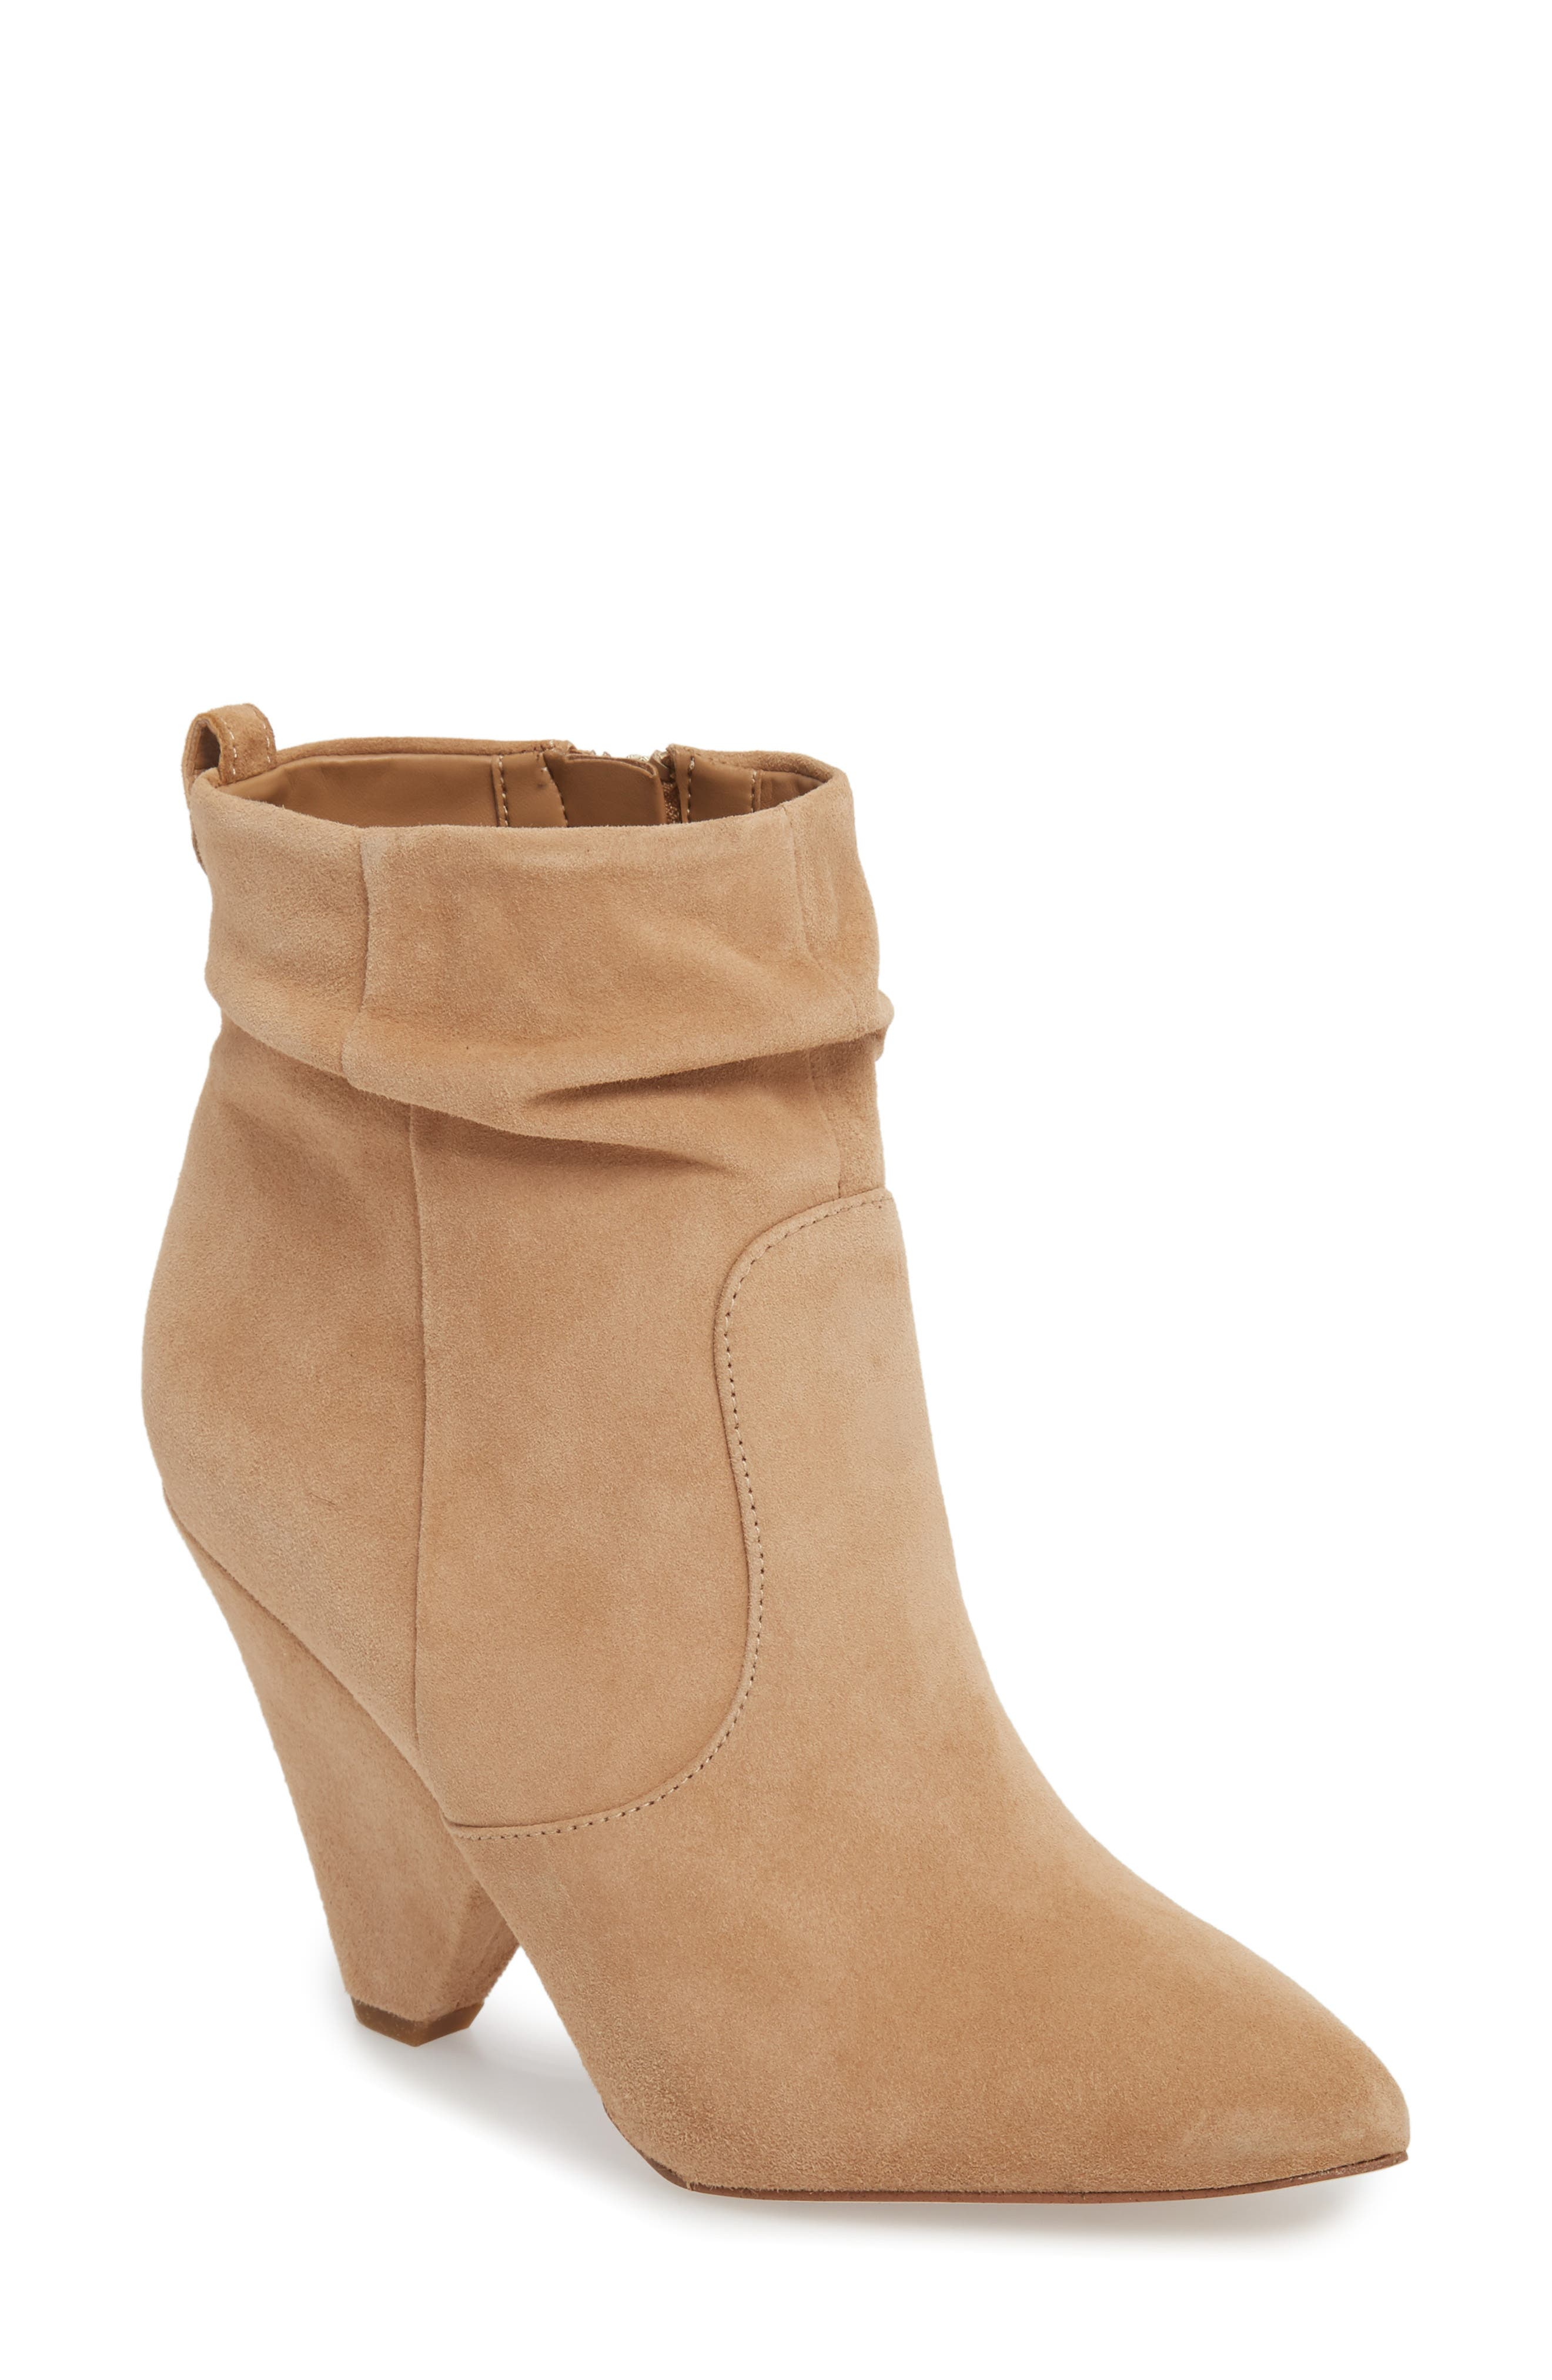 Roden Bootie,                         Main,                         color, GOLDEN CARAMEL LEATHER